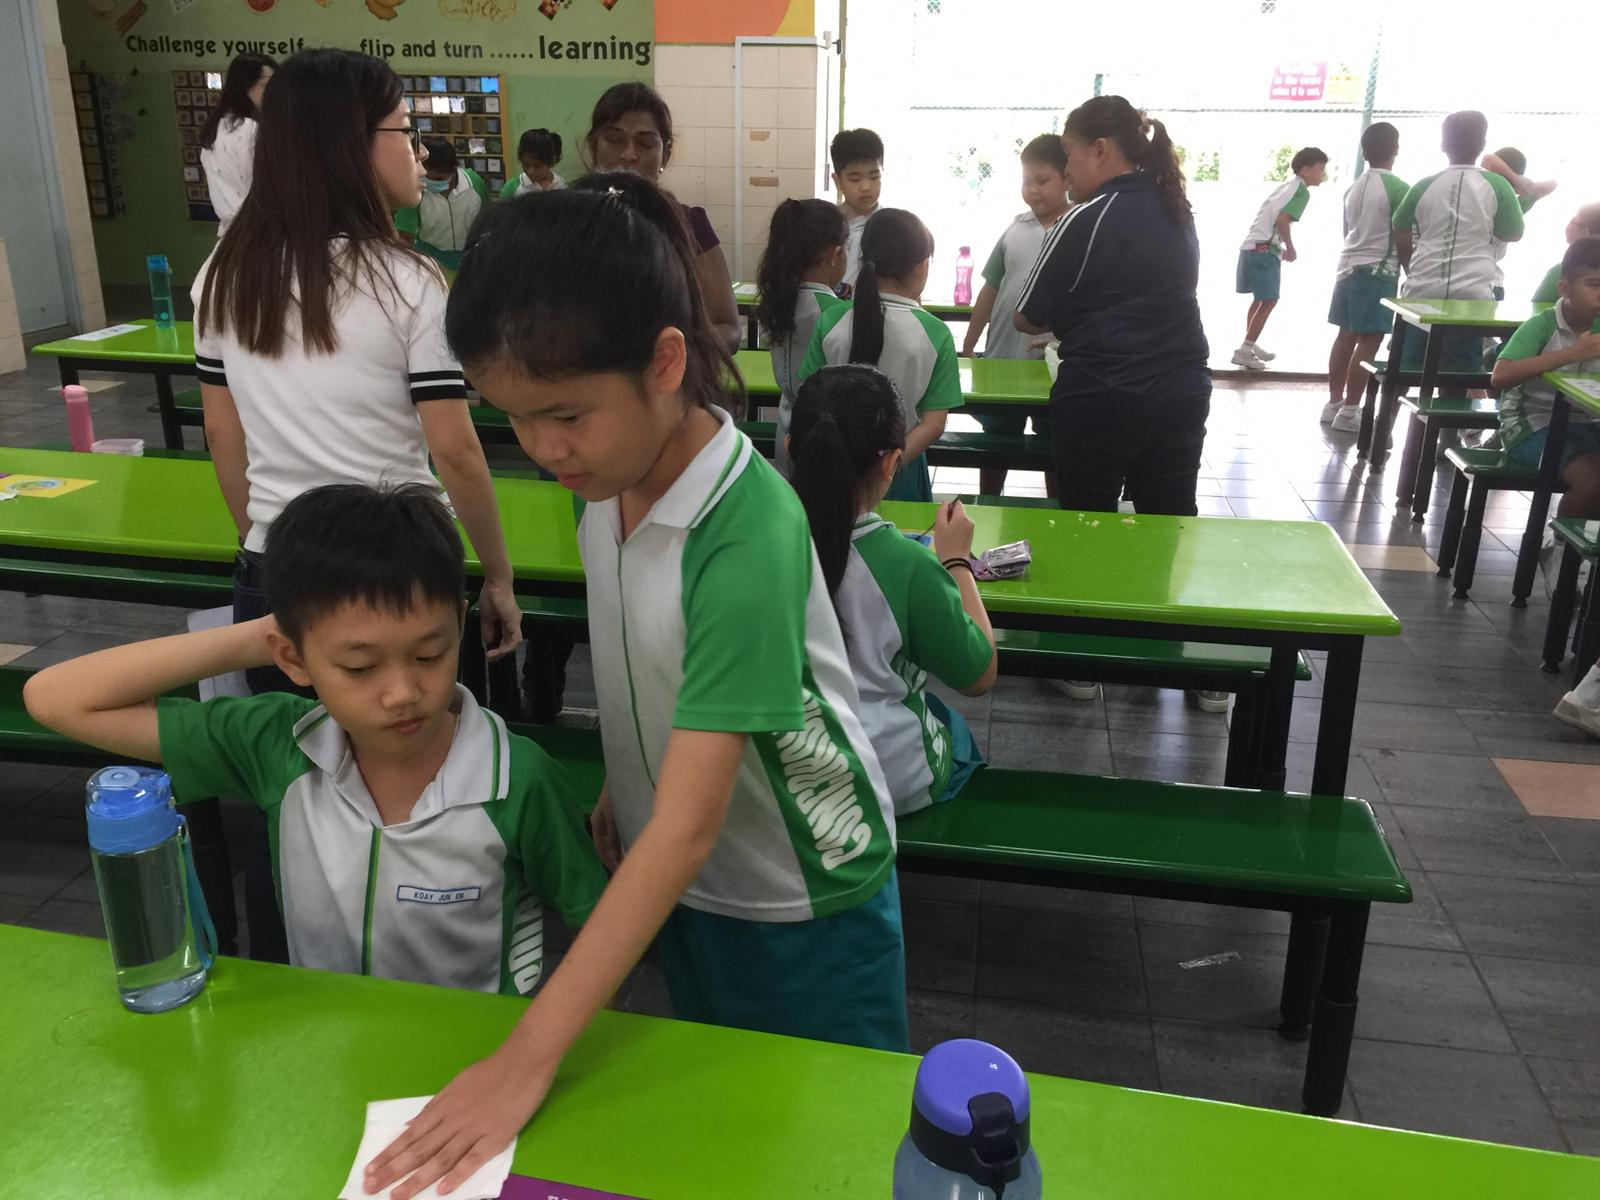 A student showing her classmate how to do the Wipe-Down Routine.jpeg